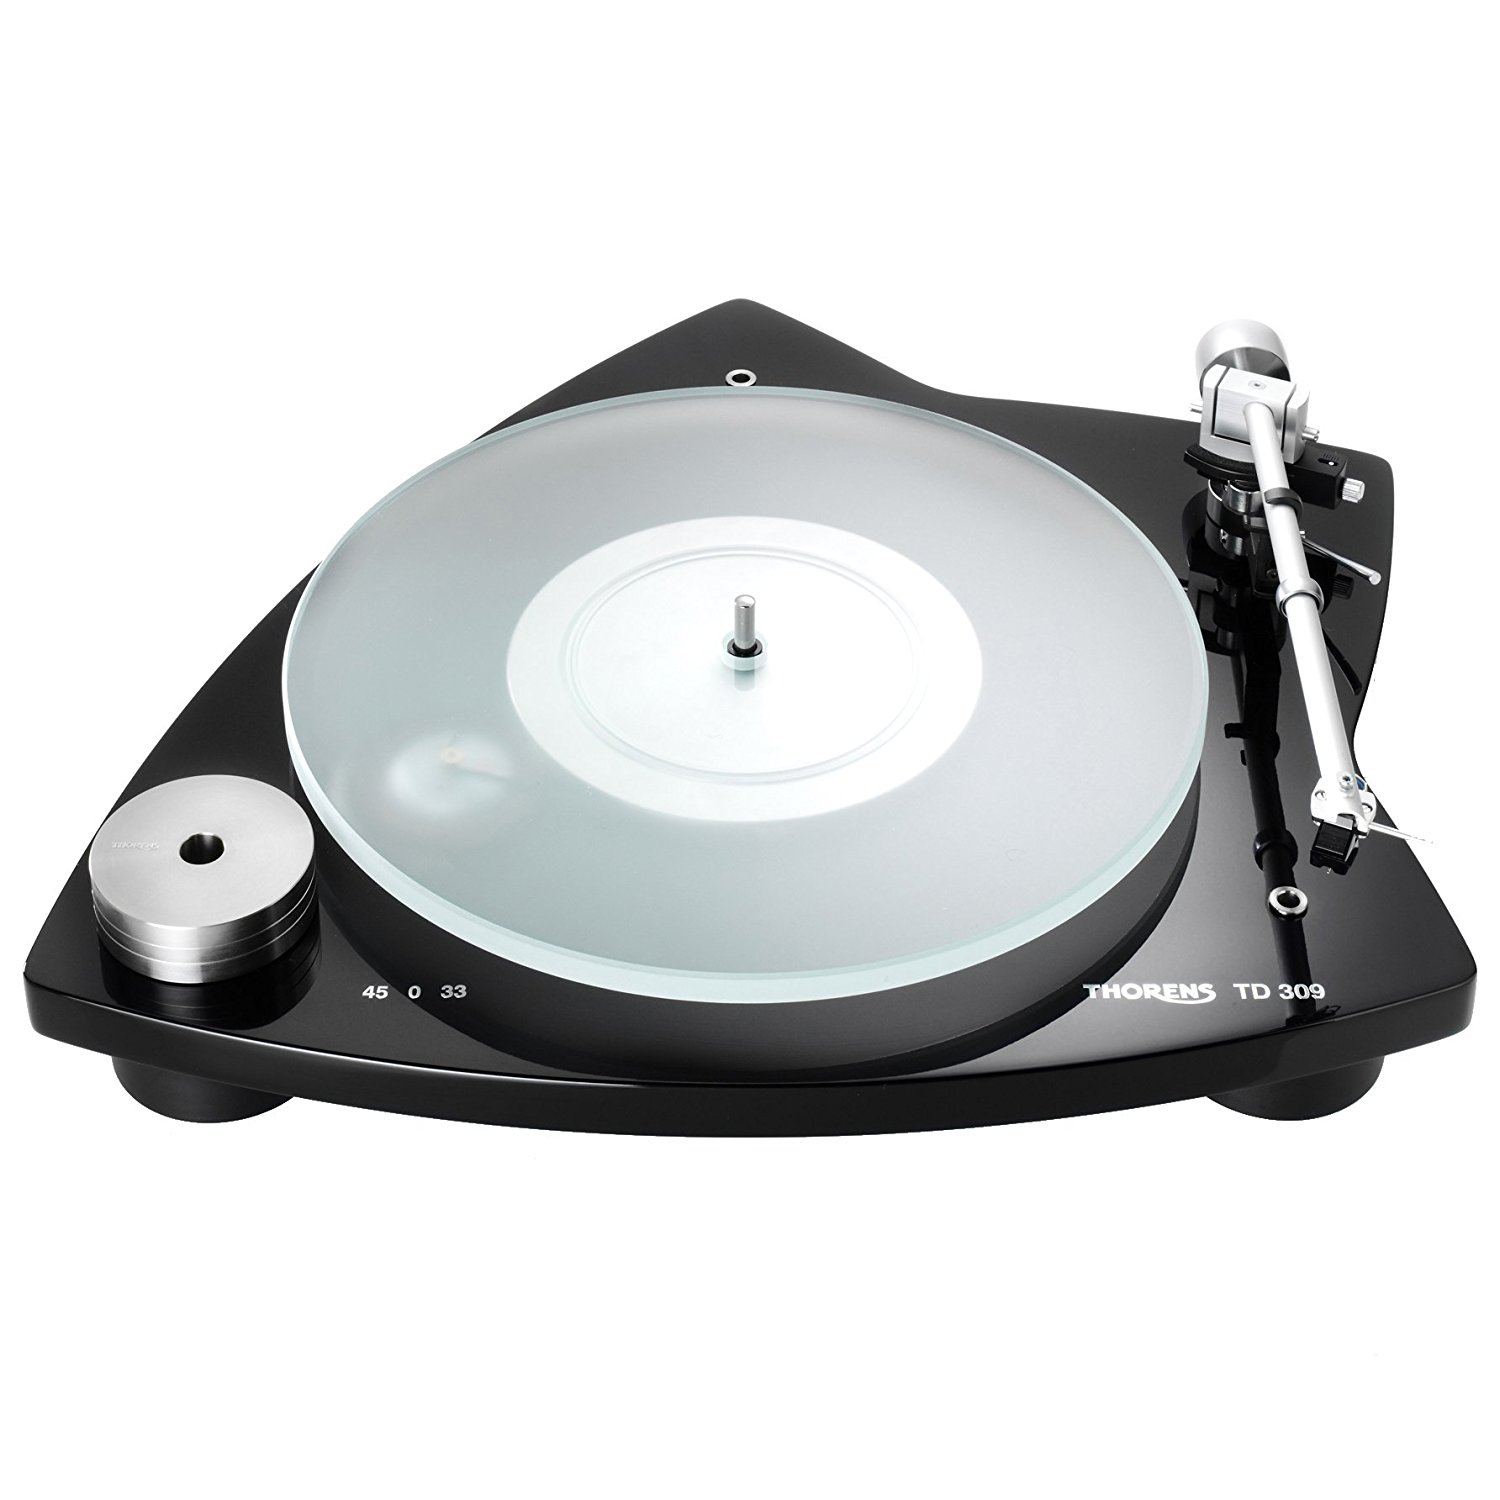 Best audiophile turntable Thorens TD 309 Tri-Balance Manual Turntable - TP92 AT95B